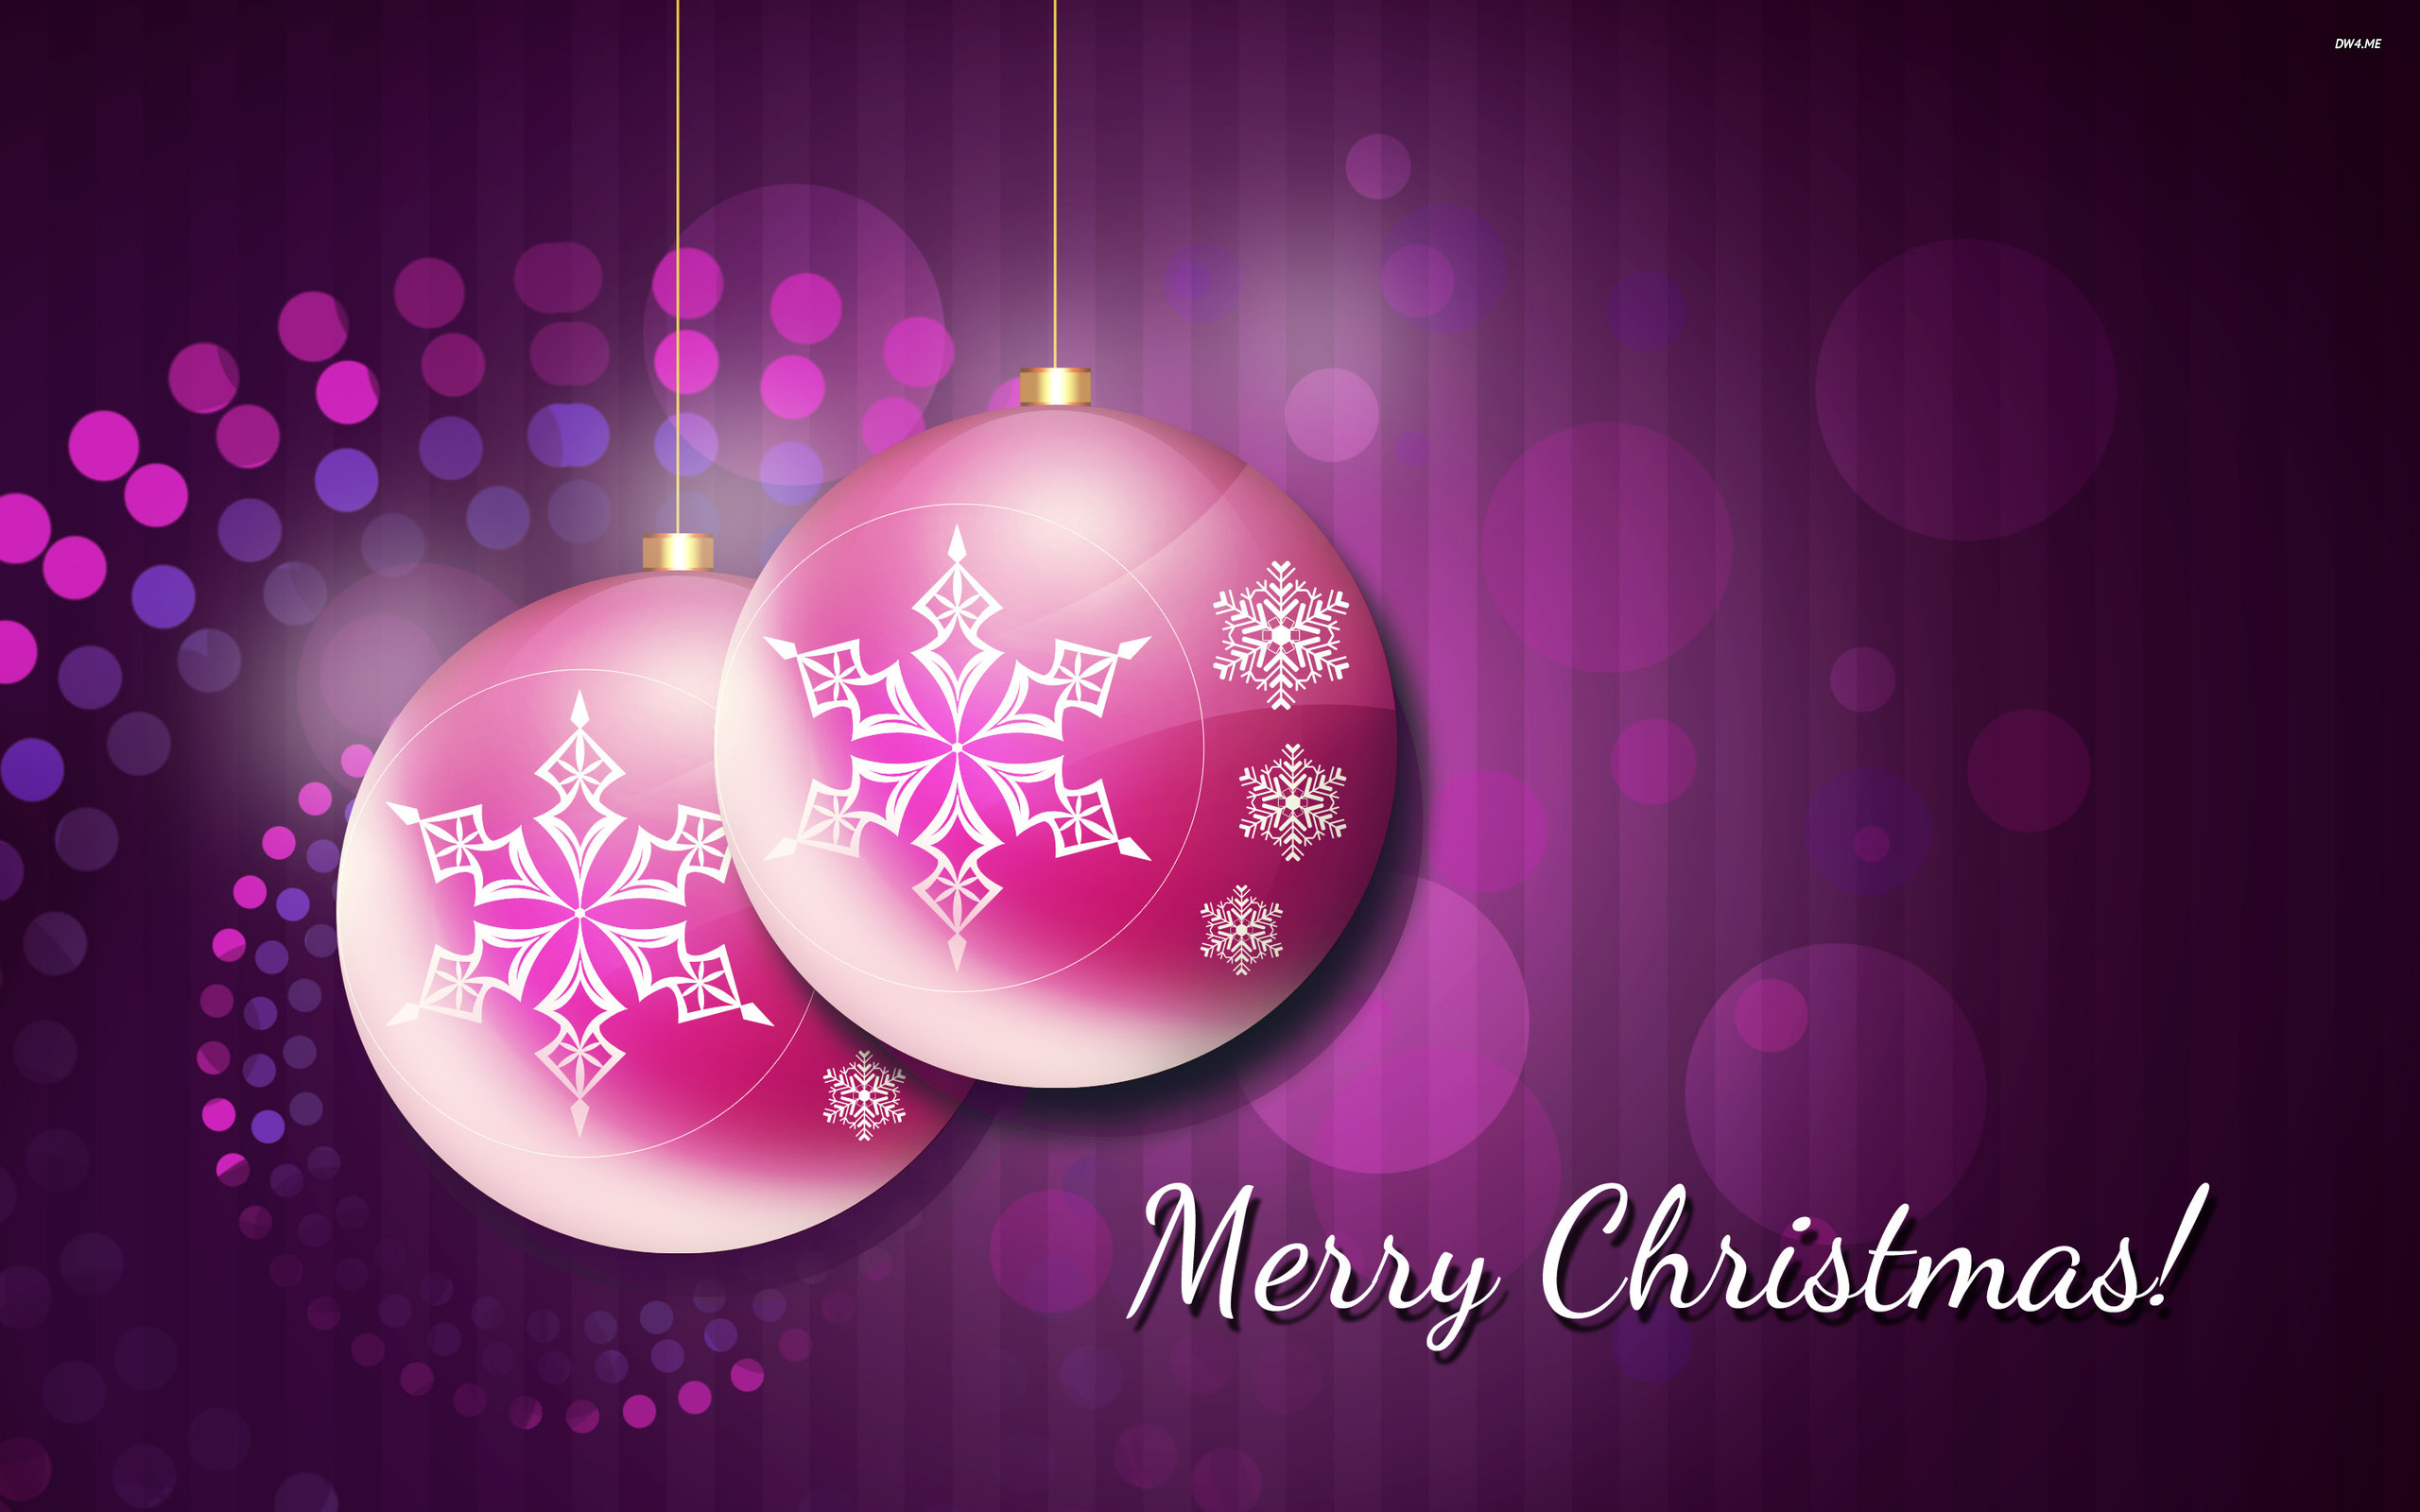 Merry Christmas wallpaper   Holiday wallpapers   1079 2560x1600